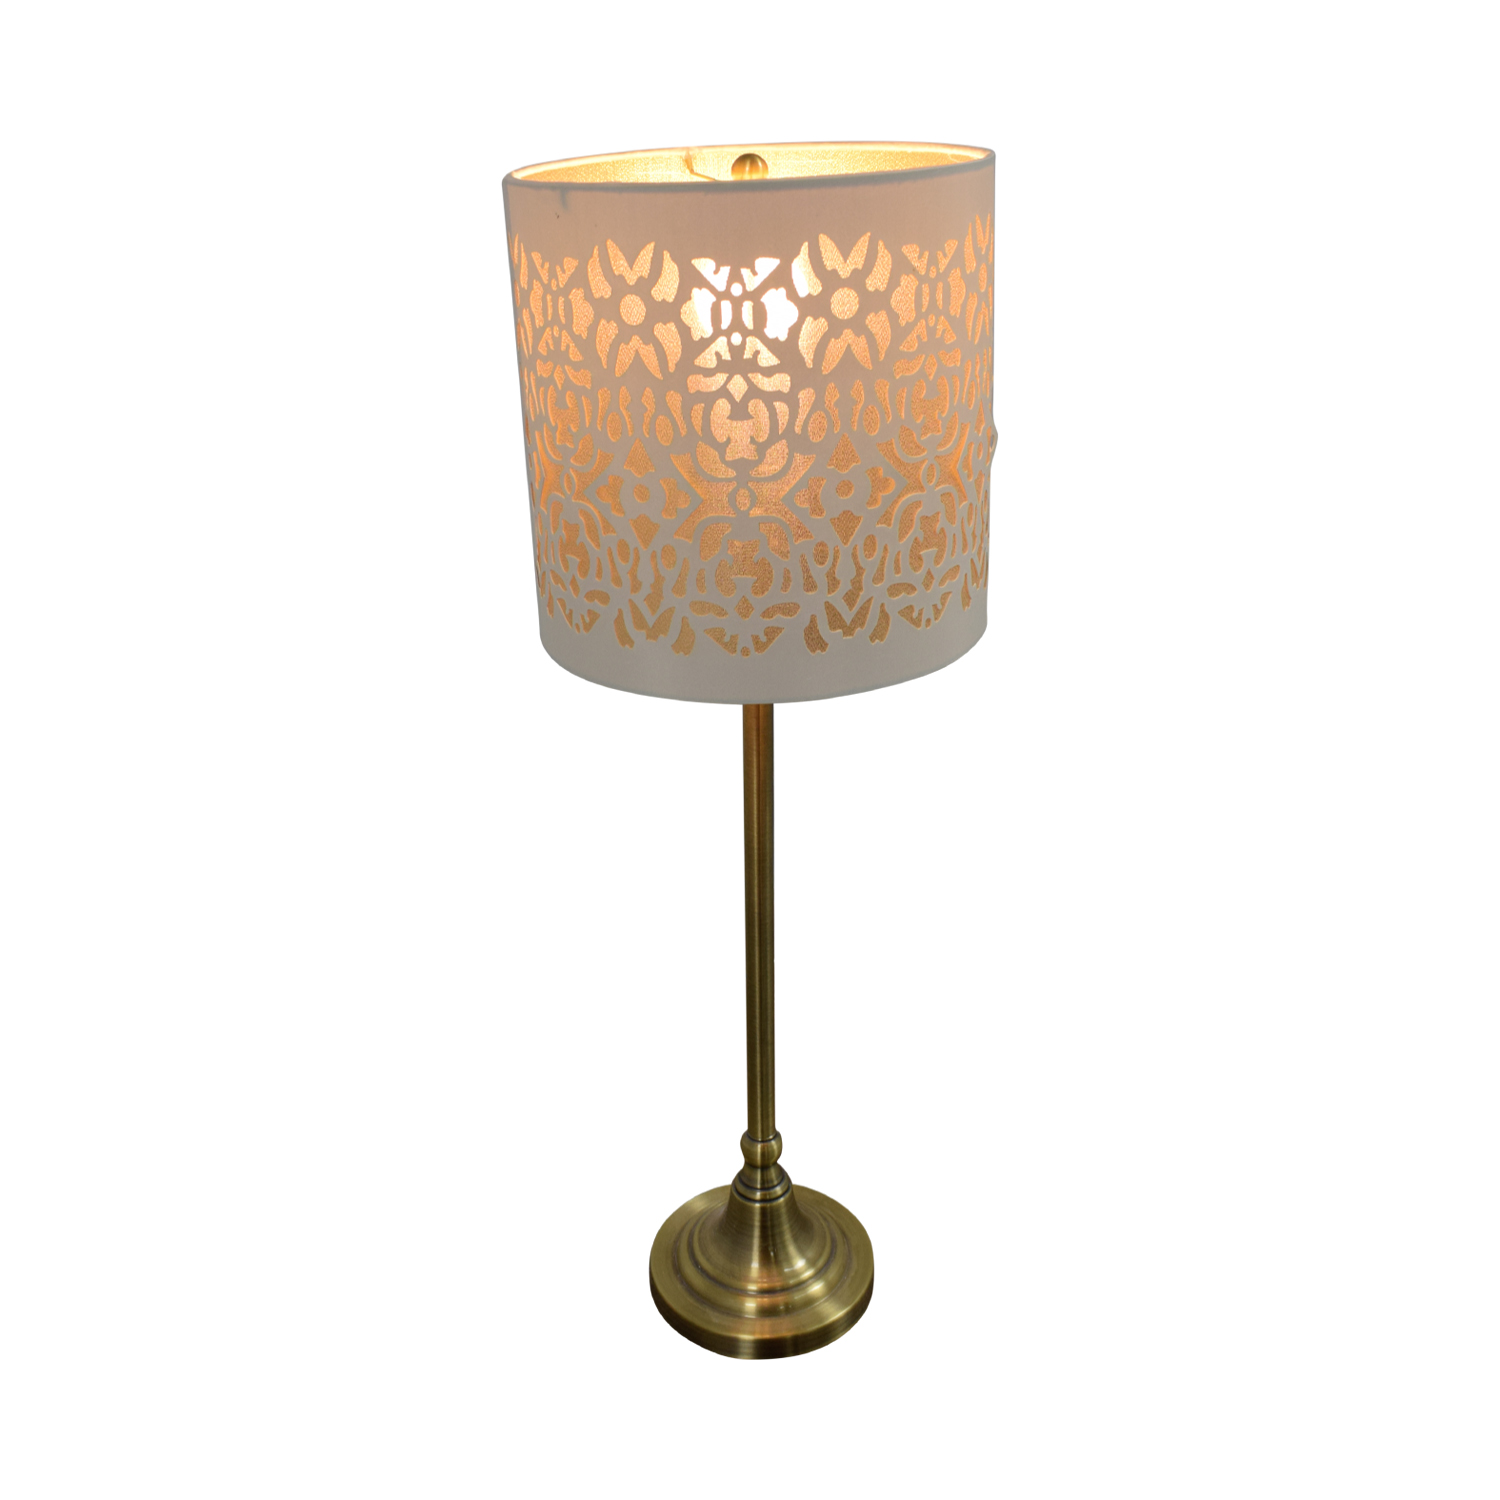 Cut Out White and Gold Table Lamp Decor